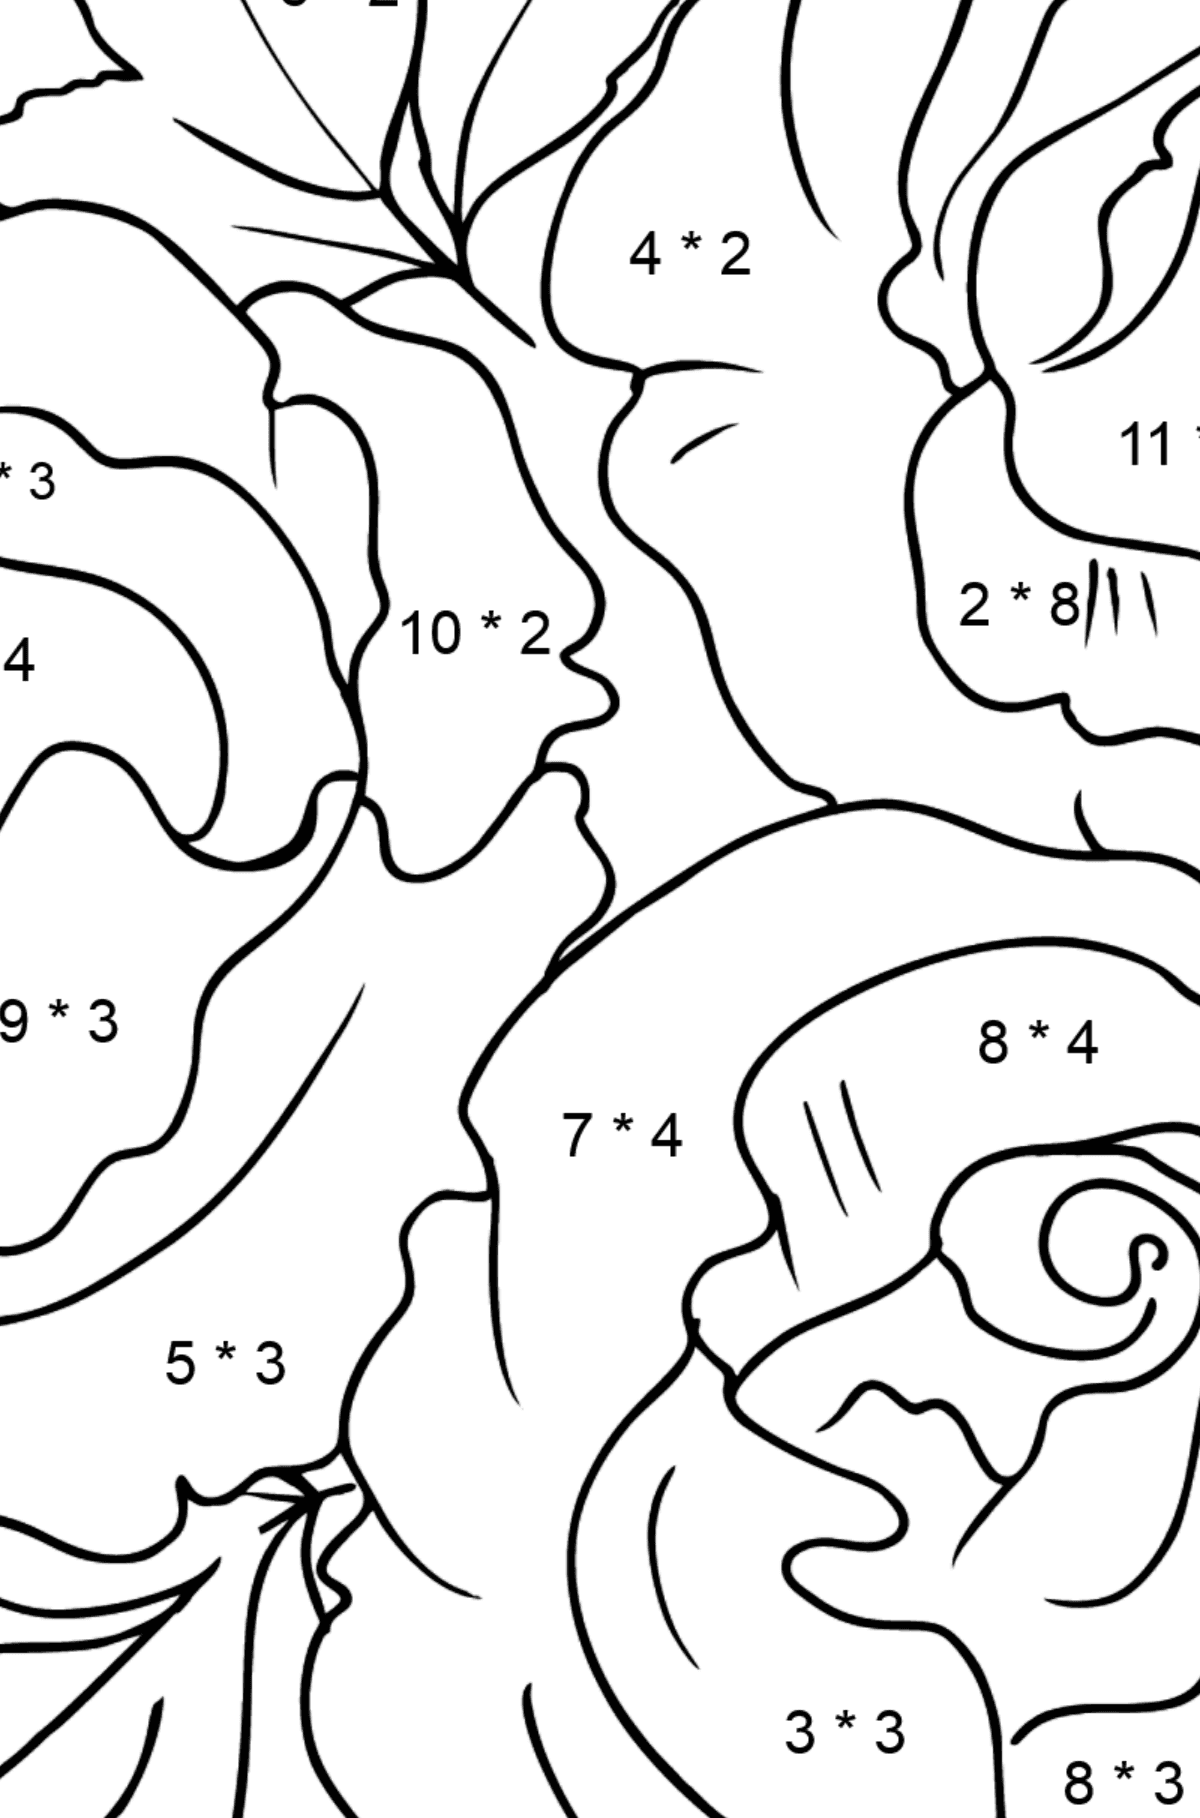 Roses Coloring Page - Math Coloring - Multiplication for Kids